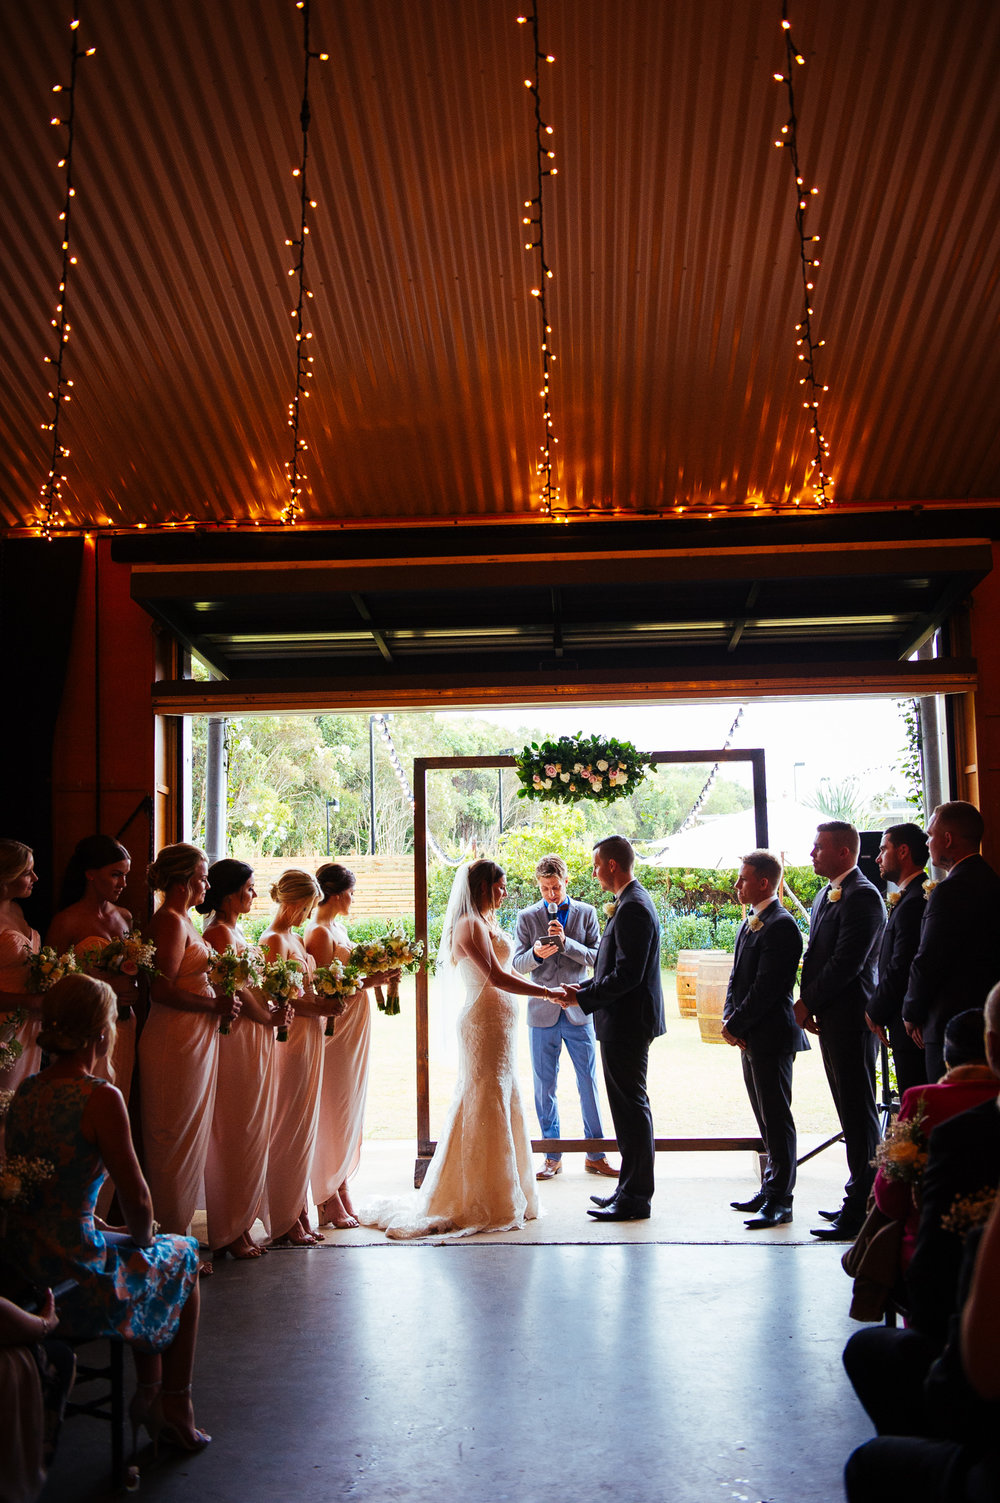 Kingscliffe_male_wedding_celebrant-Benjamin_Carlyle -6.jpg